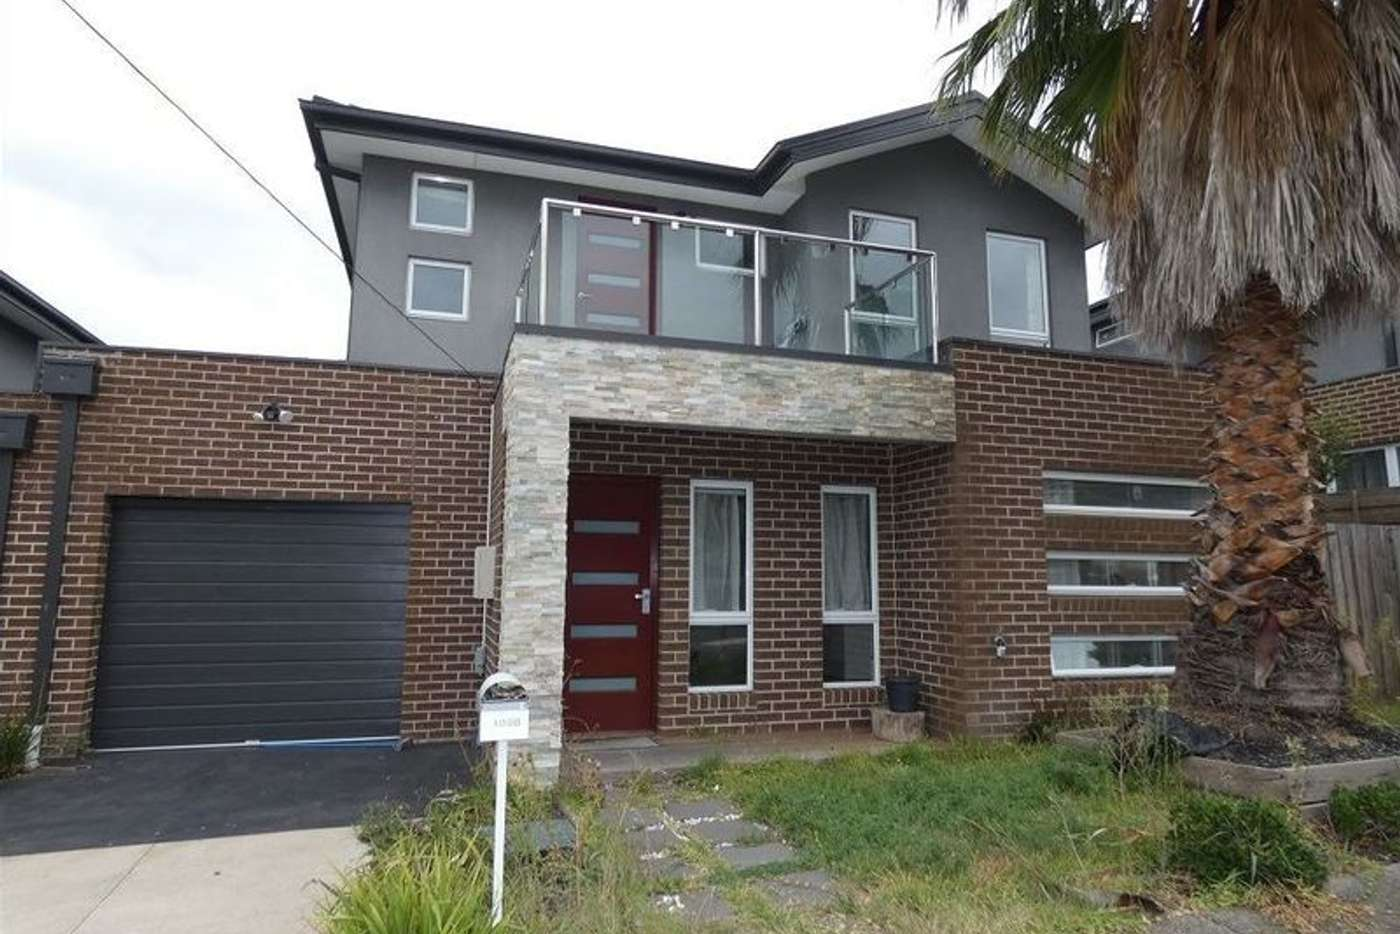 Main view of Homely house listing, 108A Weeden Drive, Vermont South VIC 3133